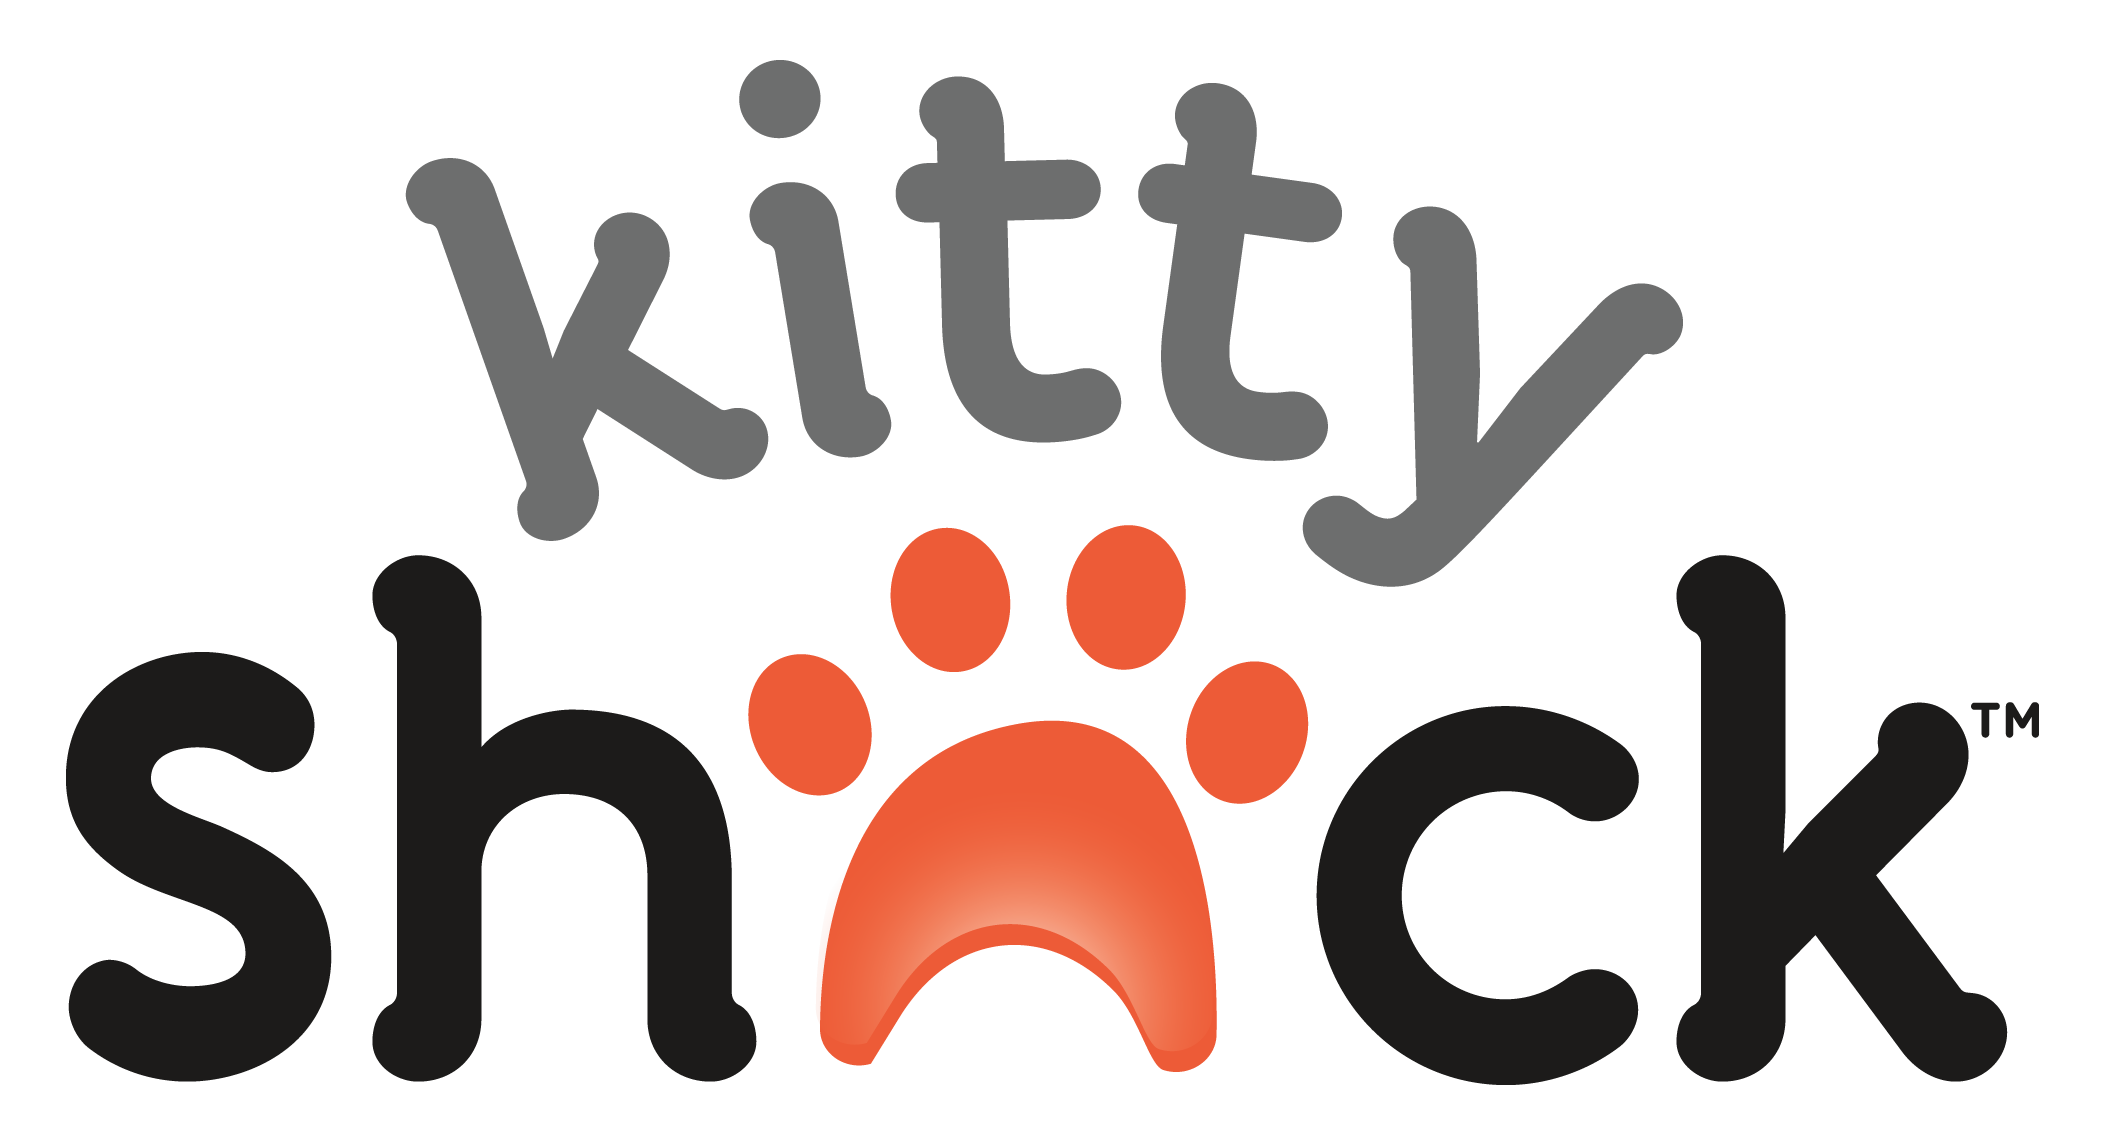 KittyShack-logo-final.png